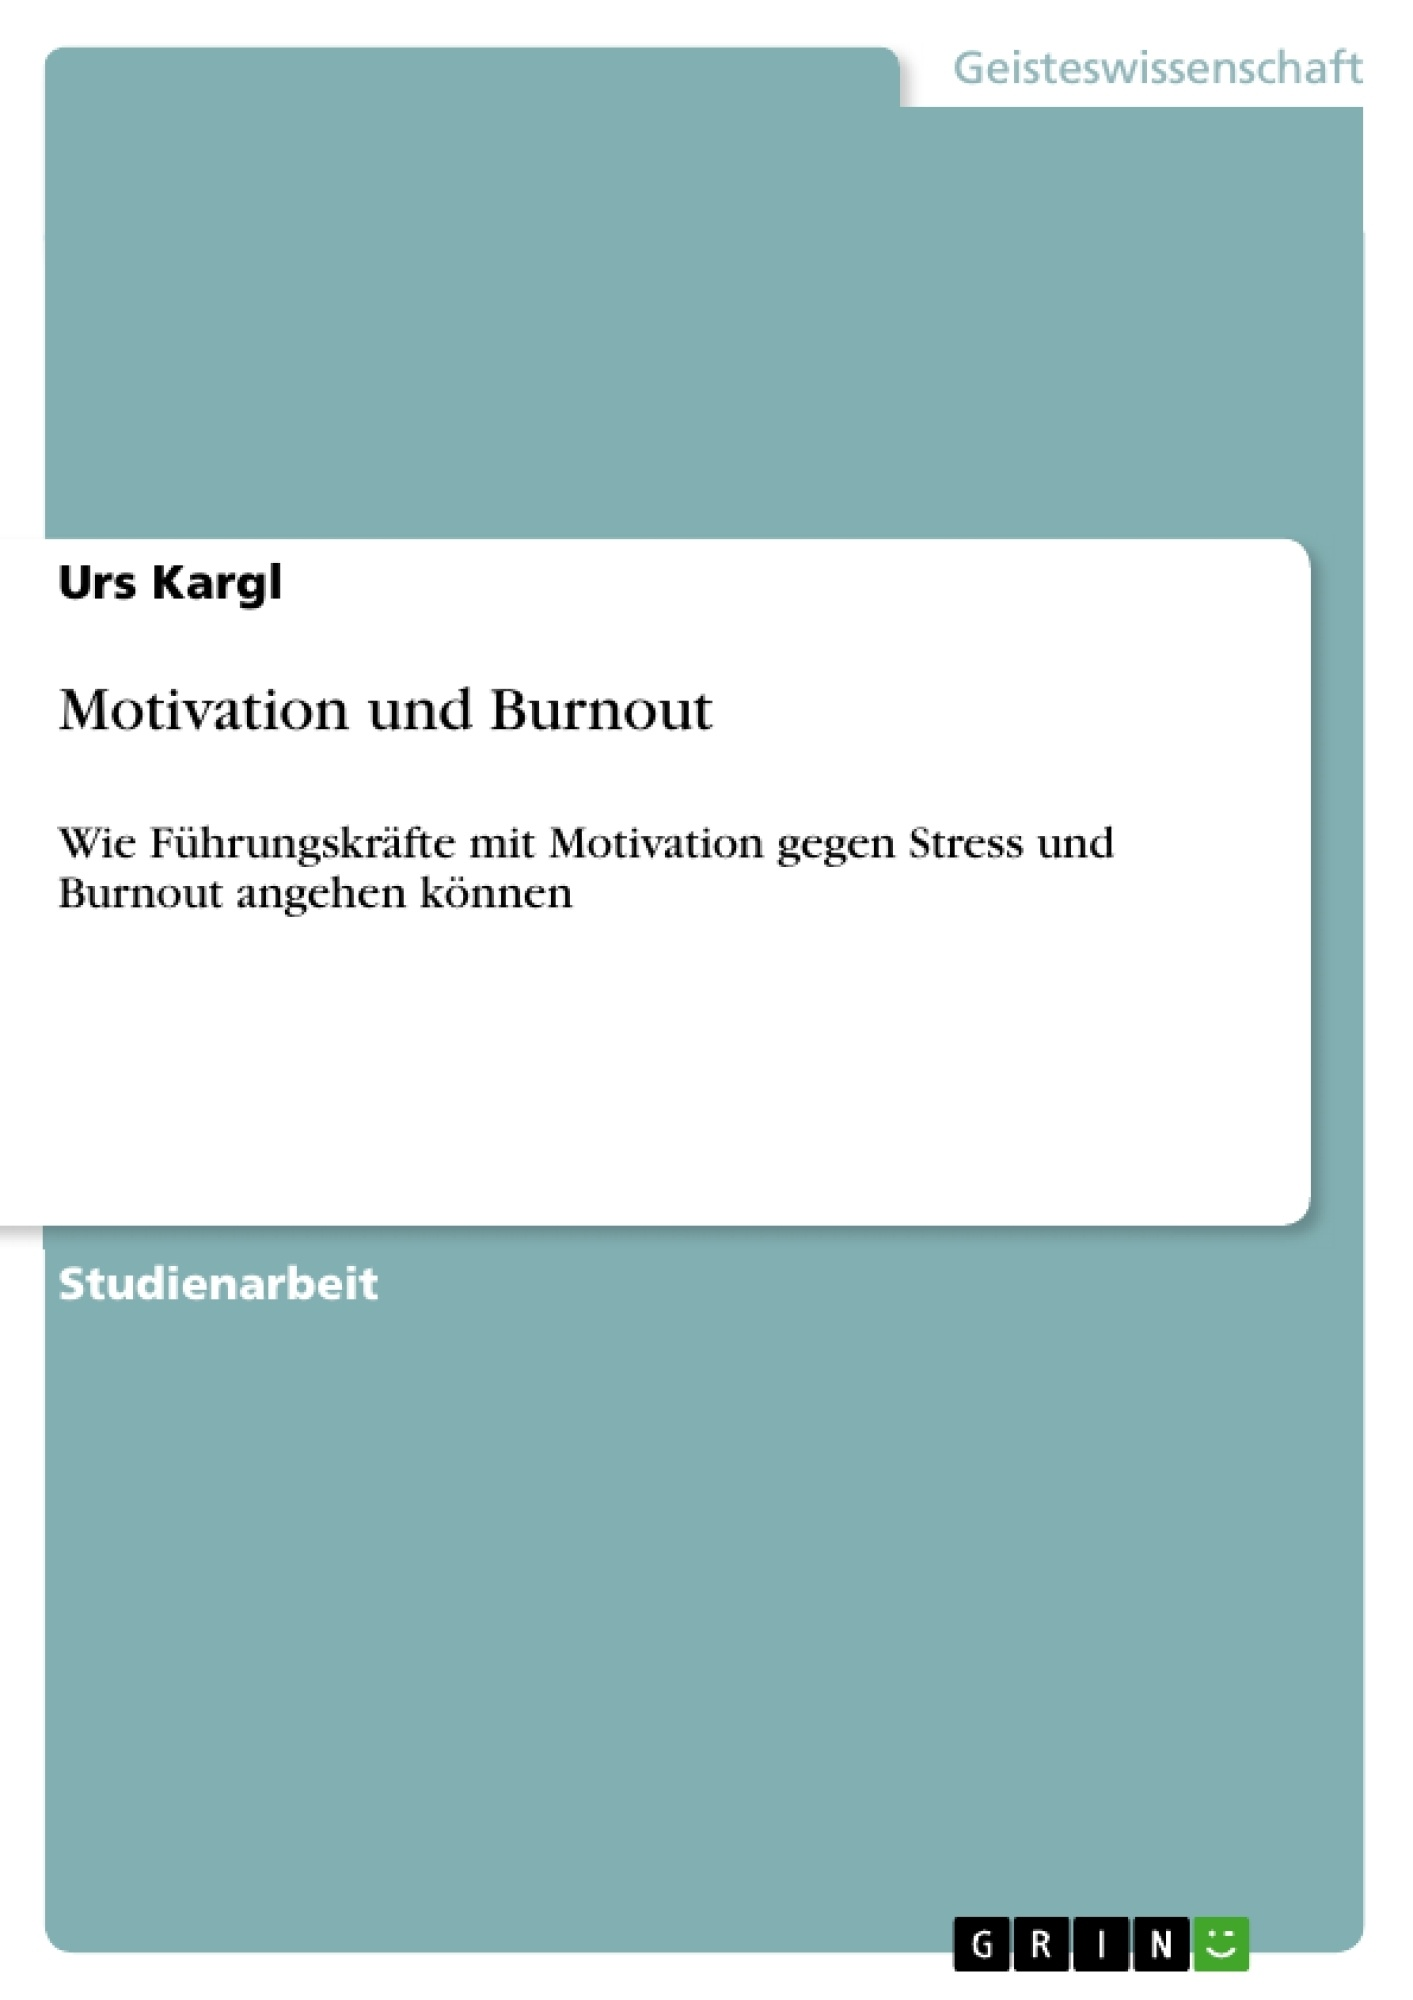 Titel: Motivation und Burnout